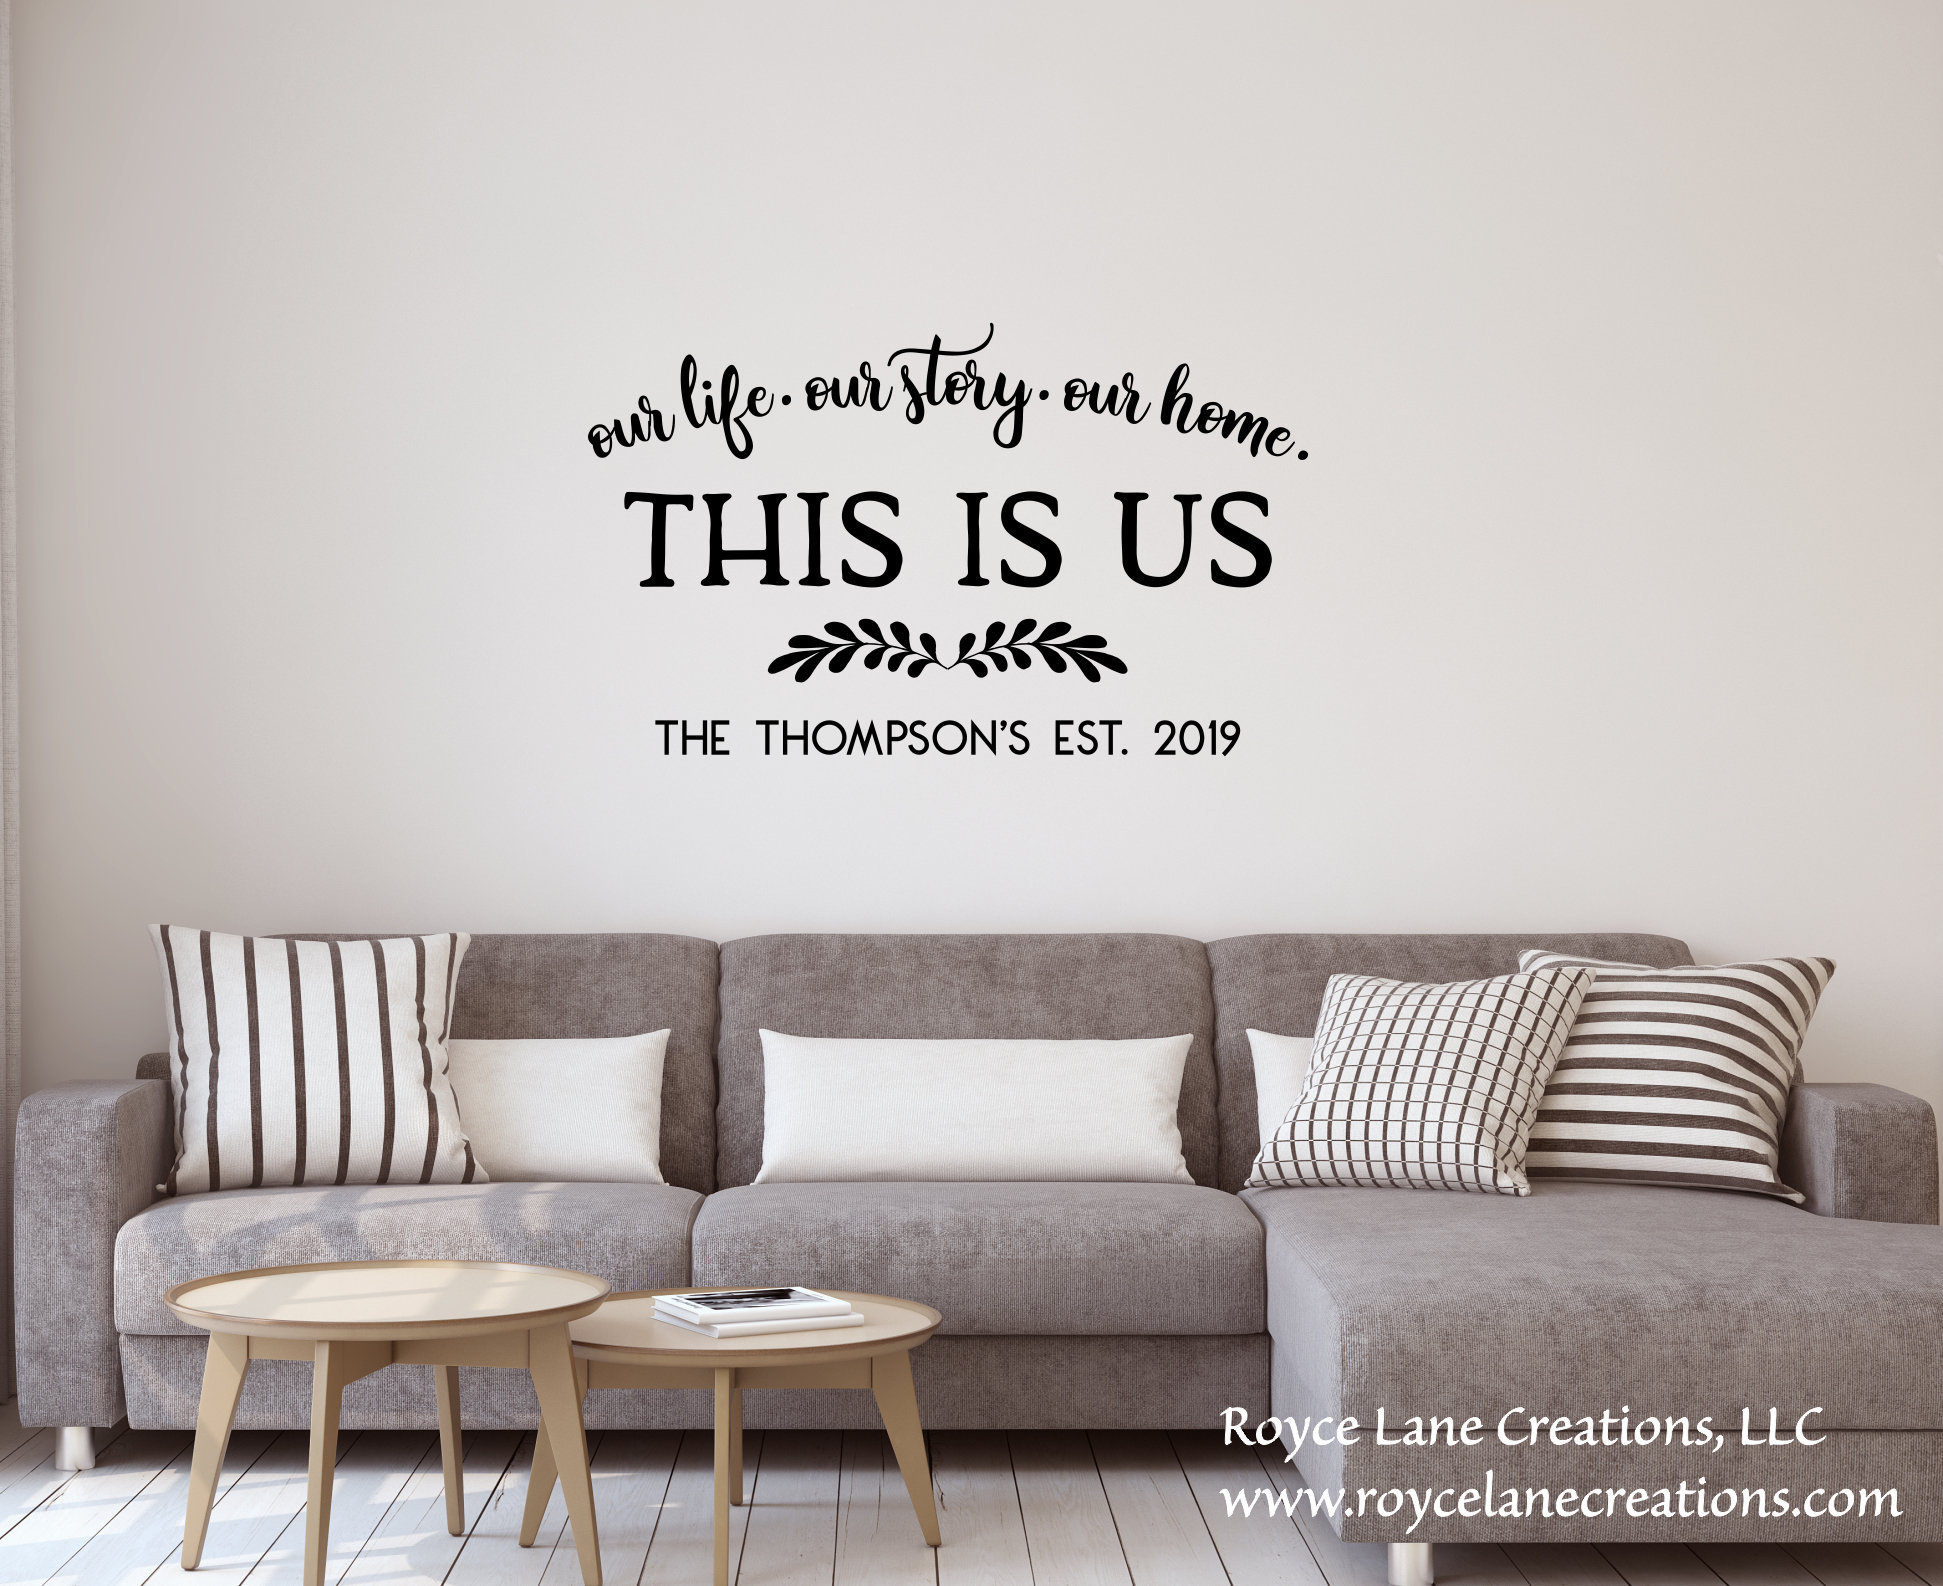 Etsy Intended For Widely Used This Is Us Wall Decor (Gallery 14 of 20)